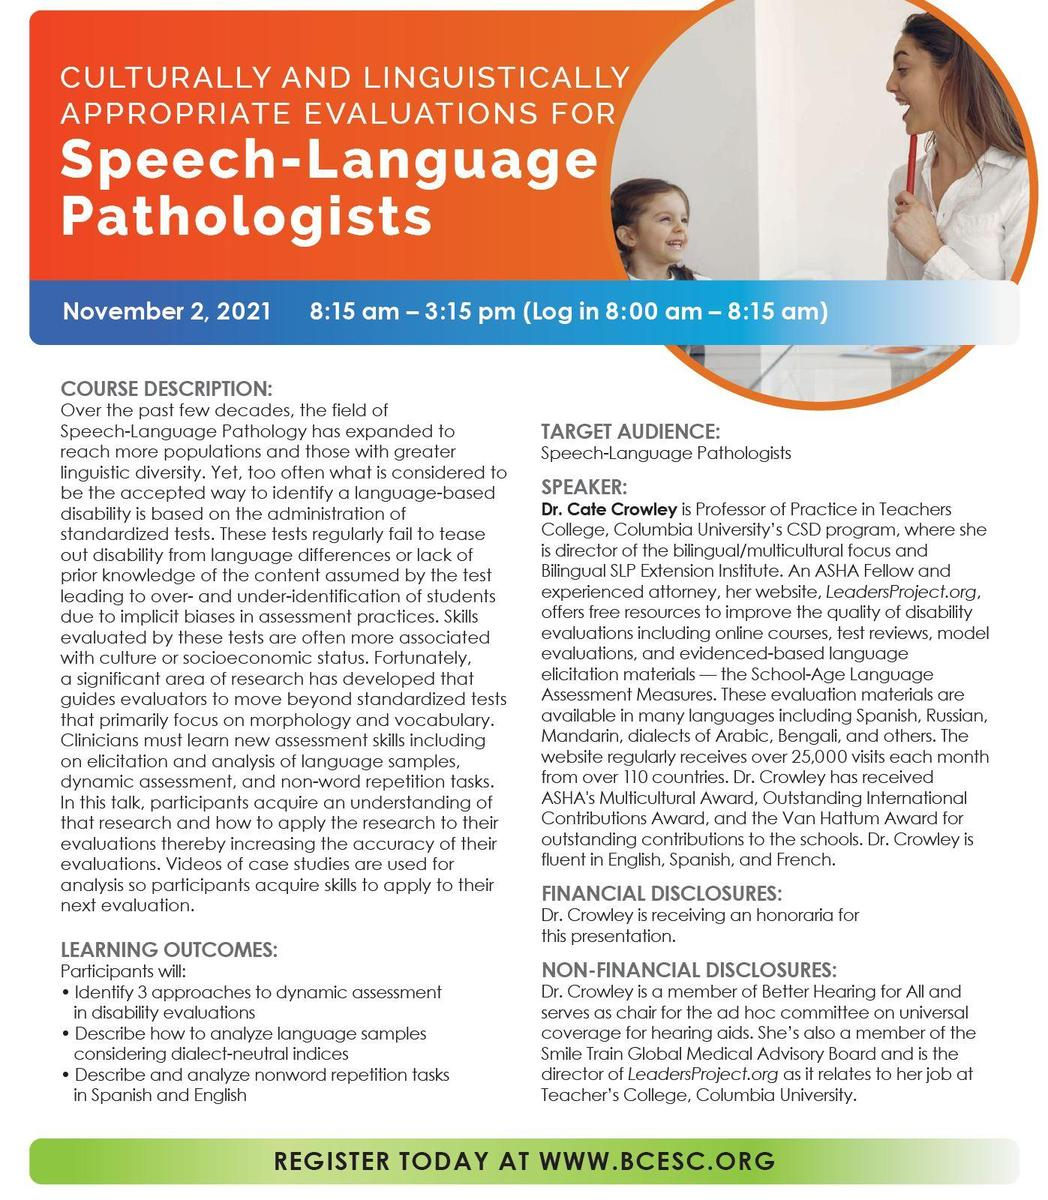 Culturally and Linguistically Appropriate Evaluations for Speech-Language Pathologists Flyer